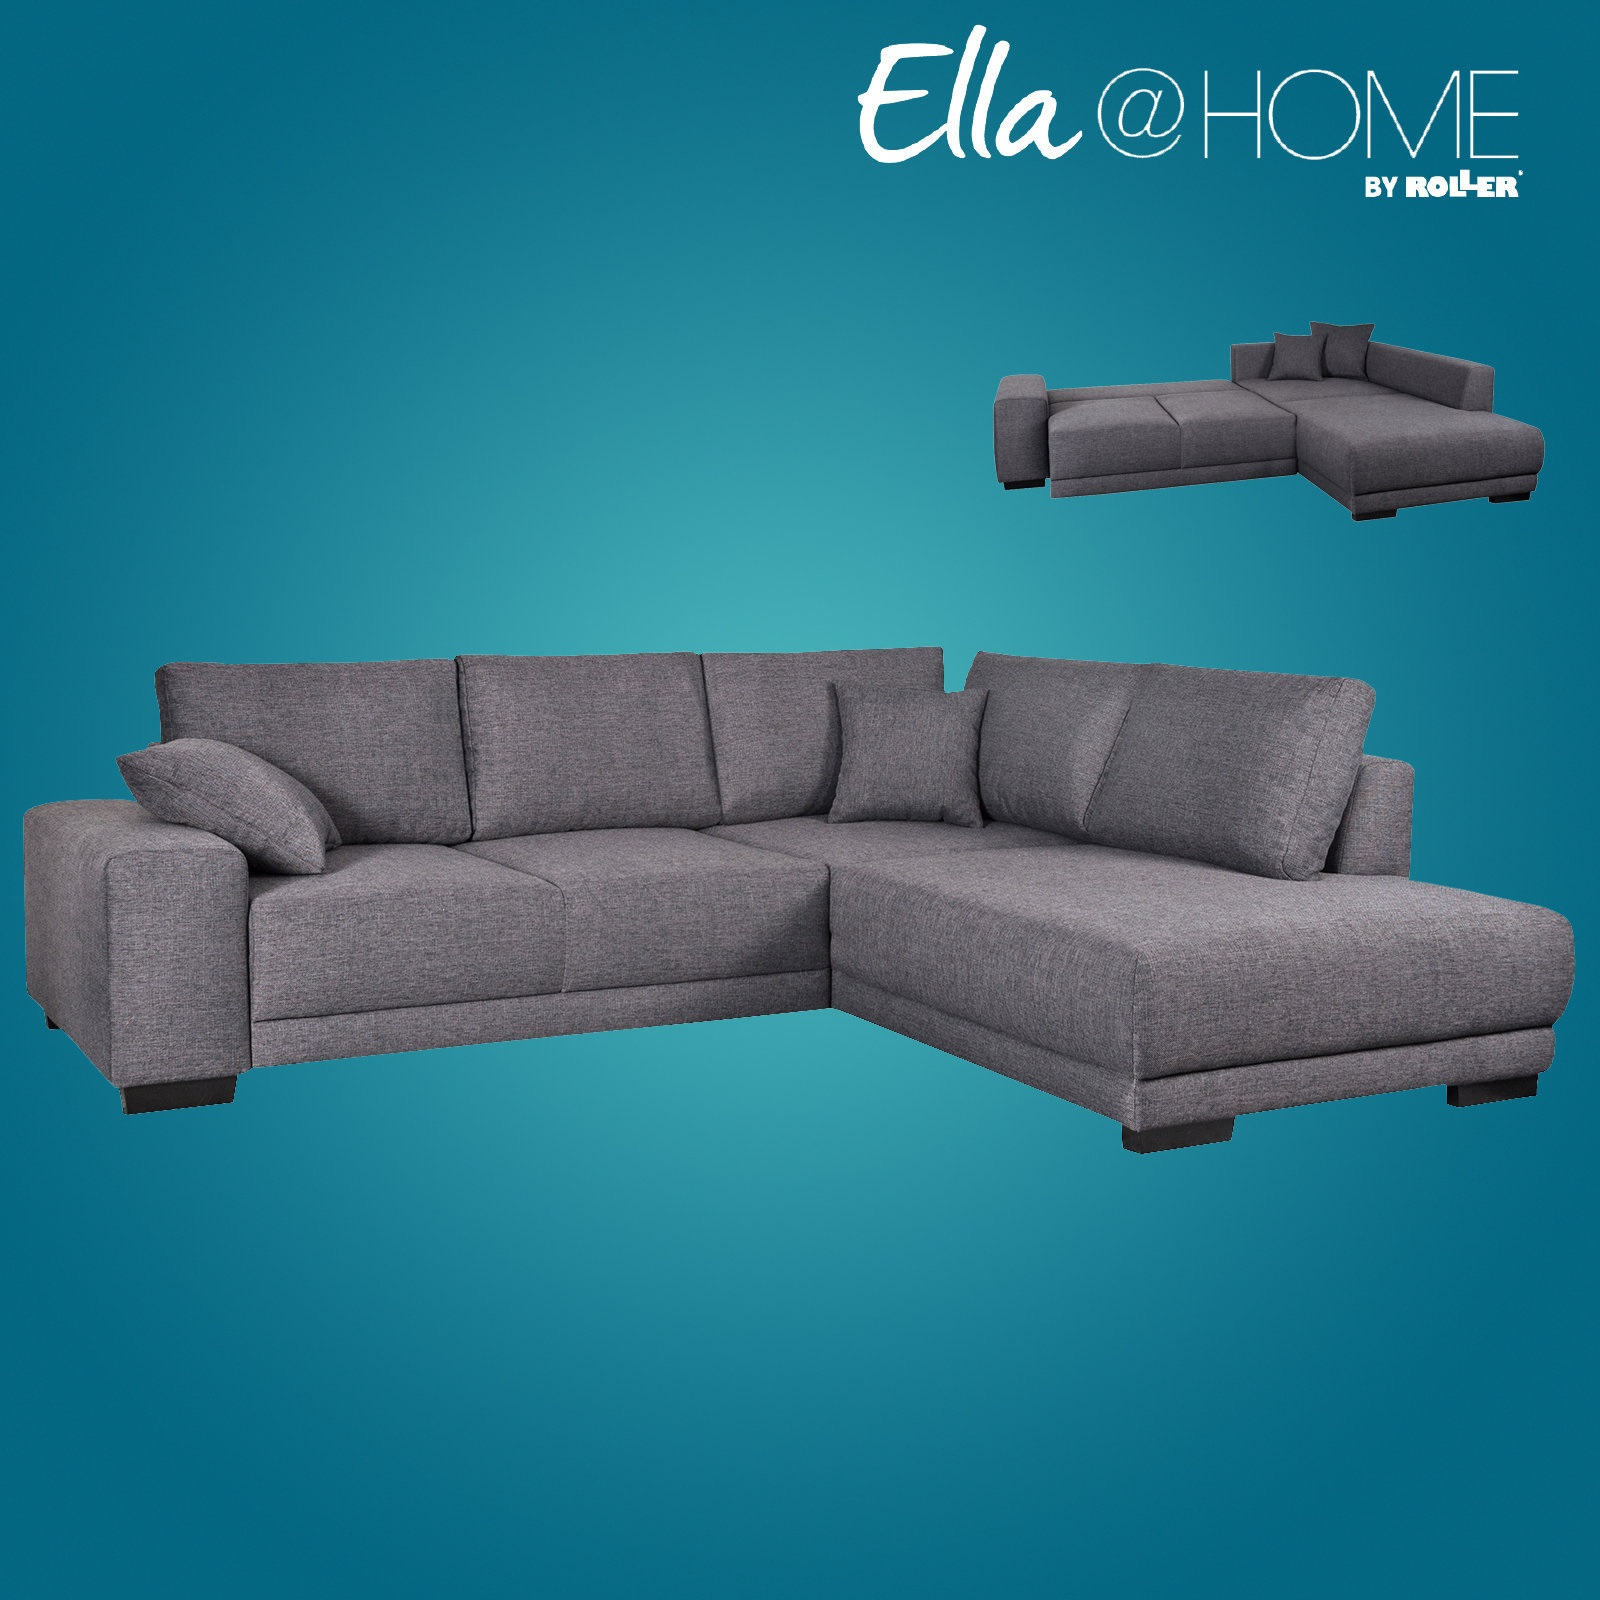 ecksofa mit liegefunktion von ella home nur 499 99 cherry m bel. Black Bedroom Furniture Sets. Home Design Ideas